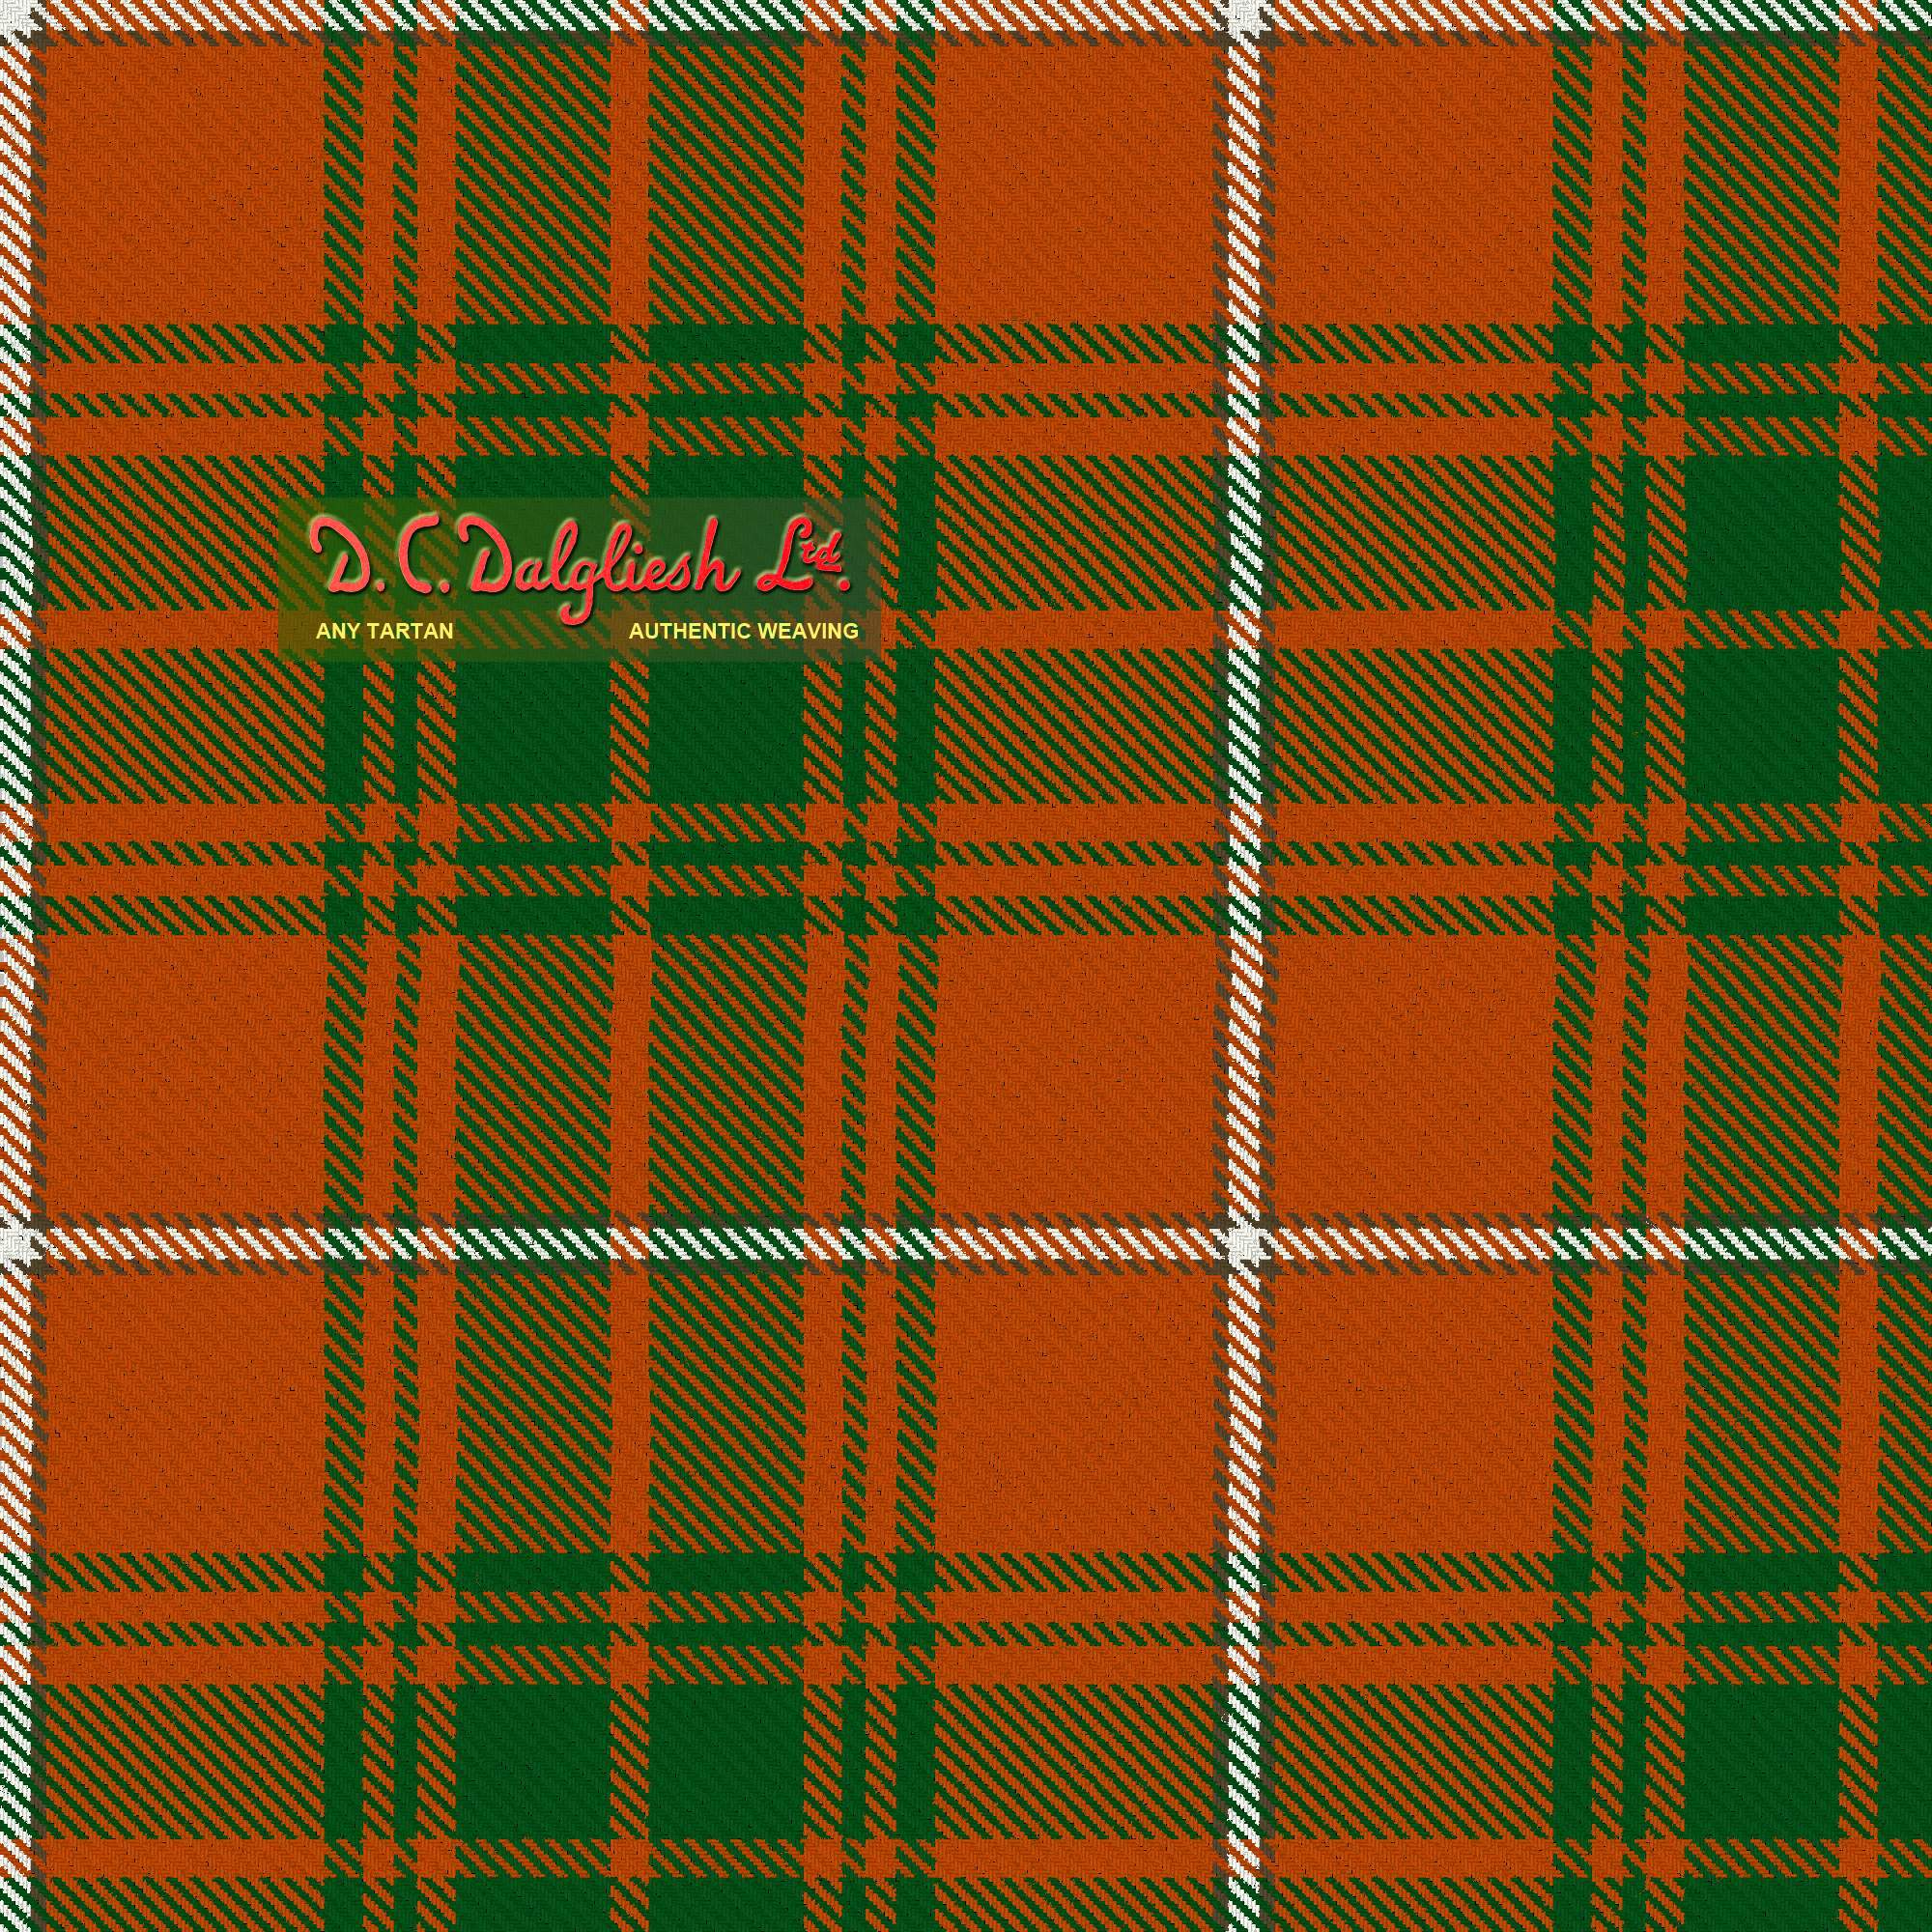 Baluch Regiment Fabric By Dc Dalgliesh Hand Crafted Tartans